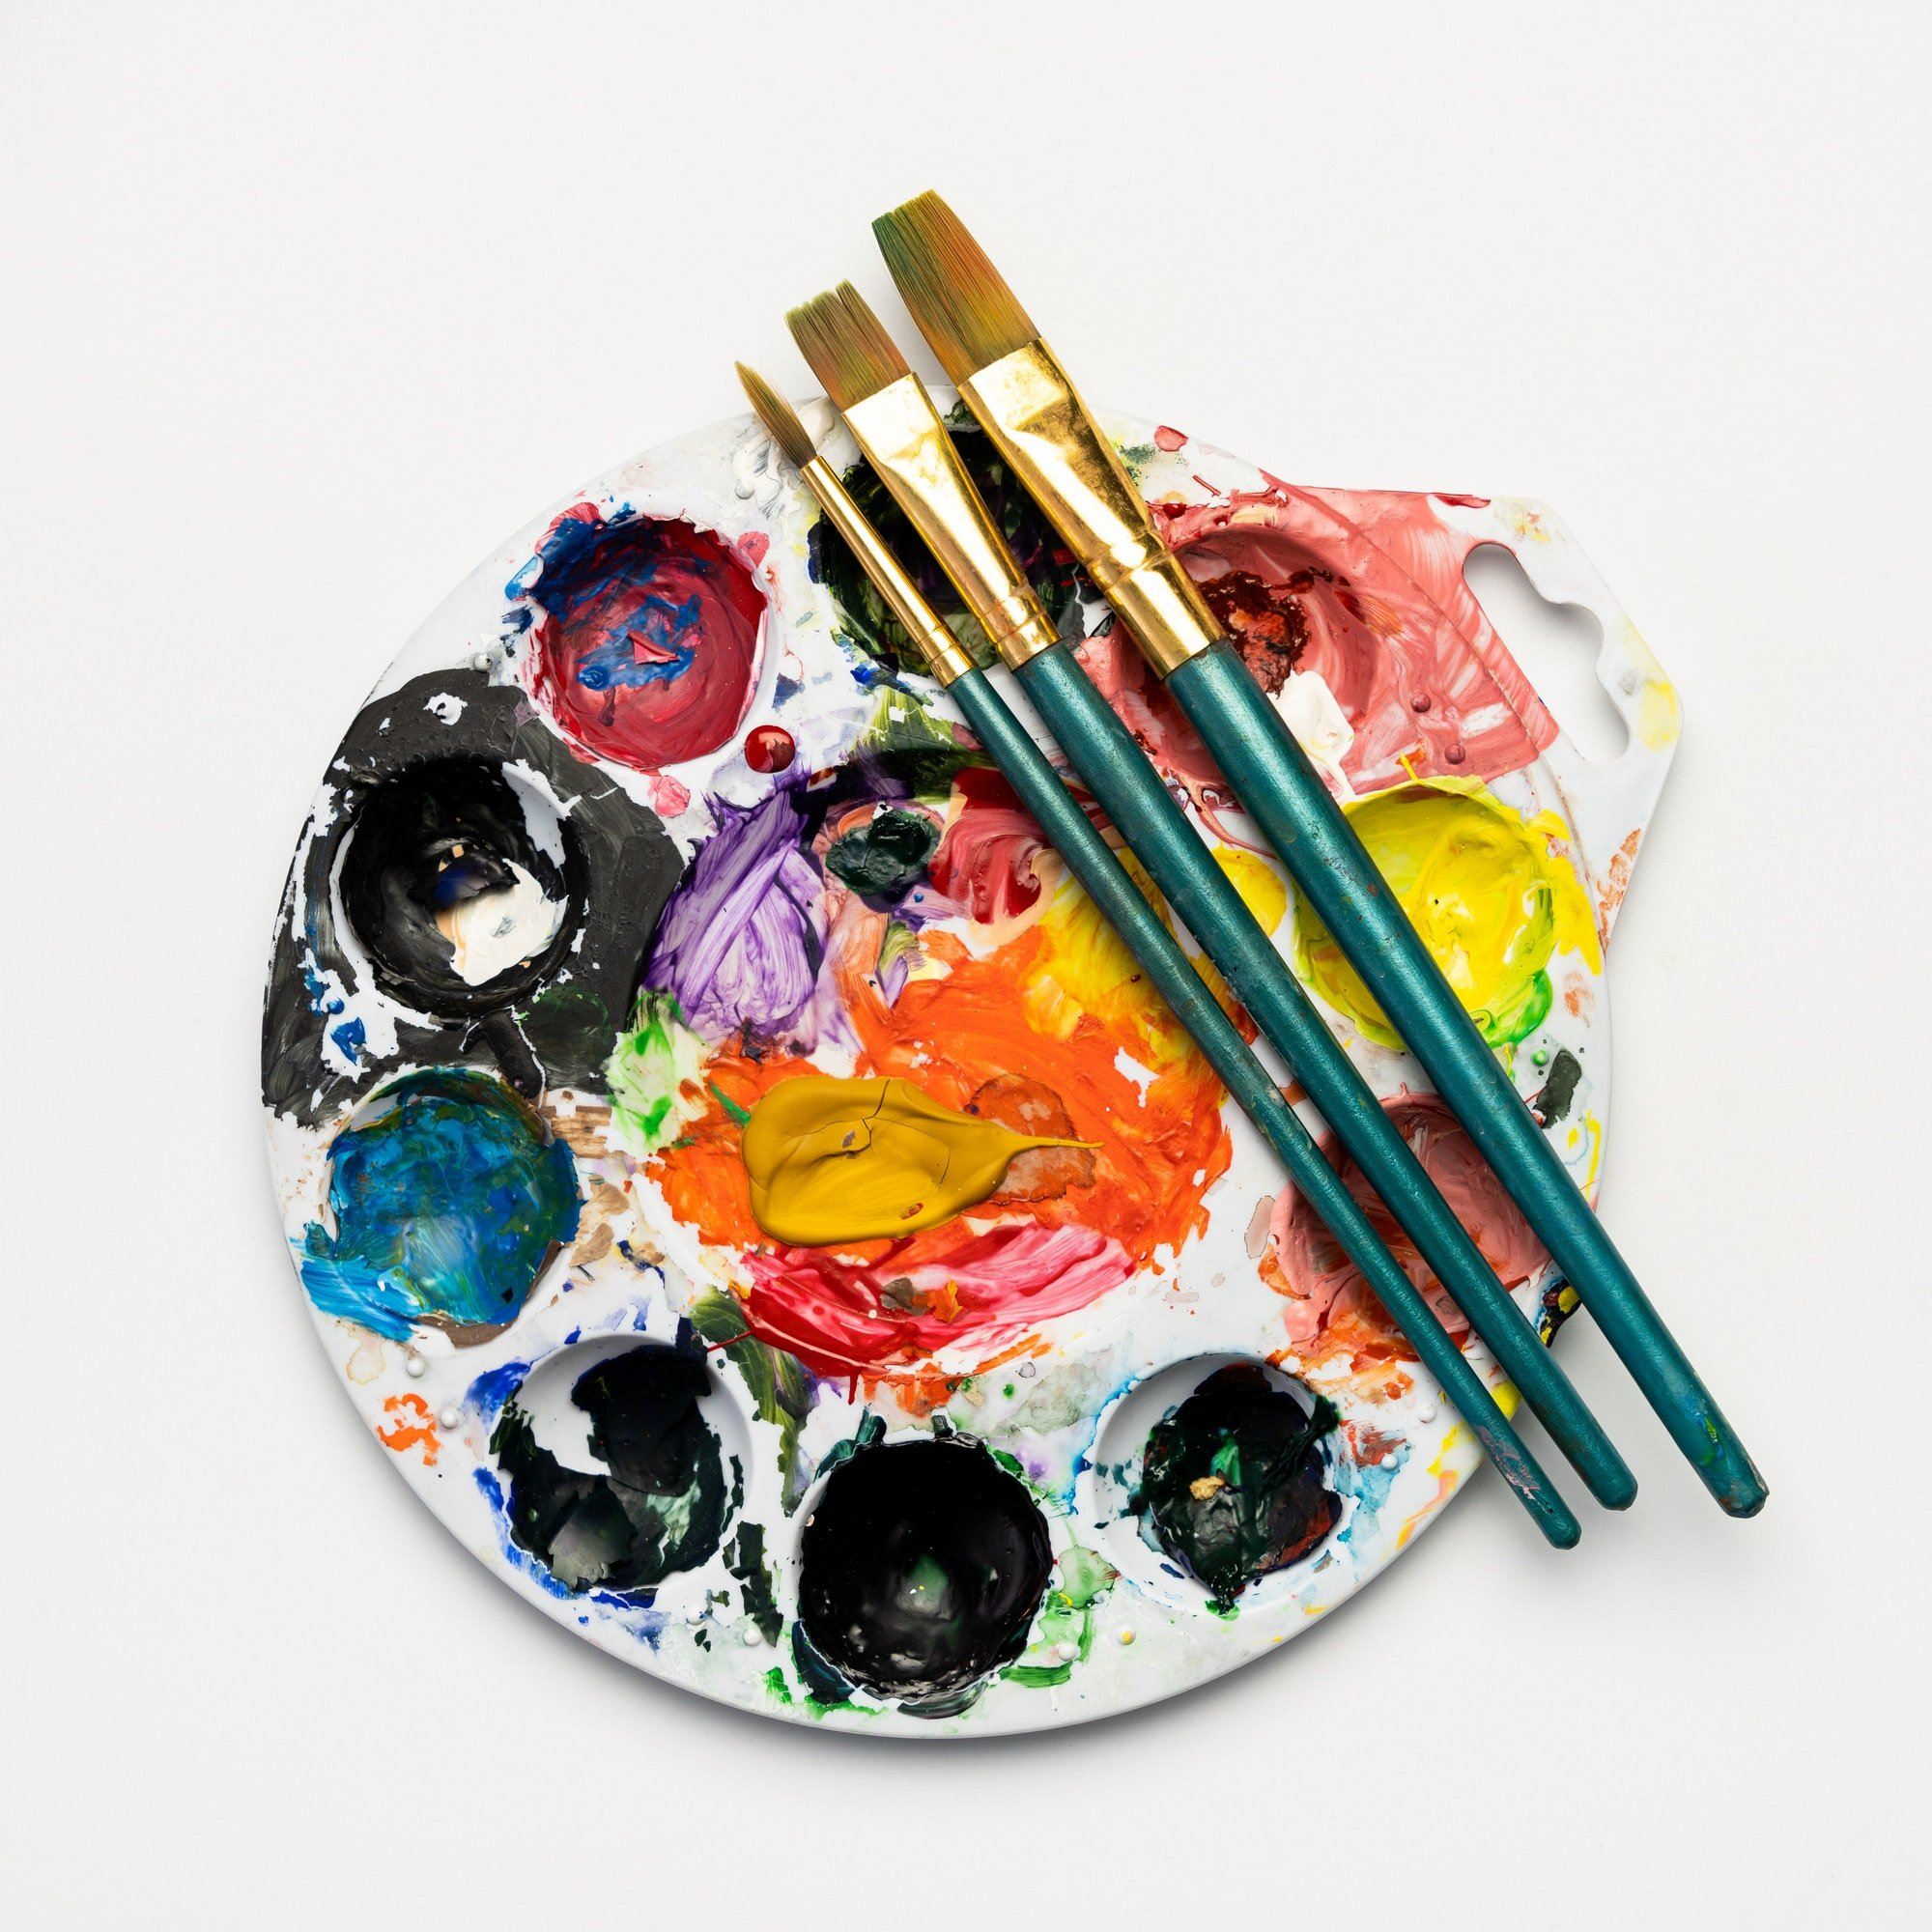 Color mixing plate and paintbrushes